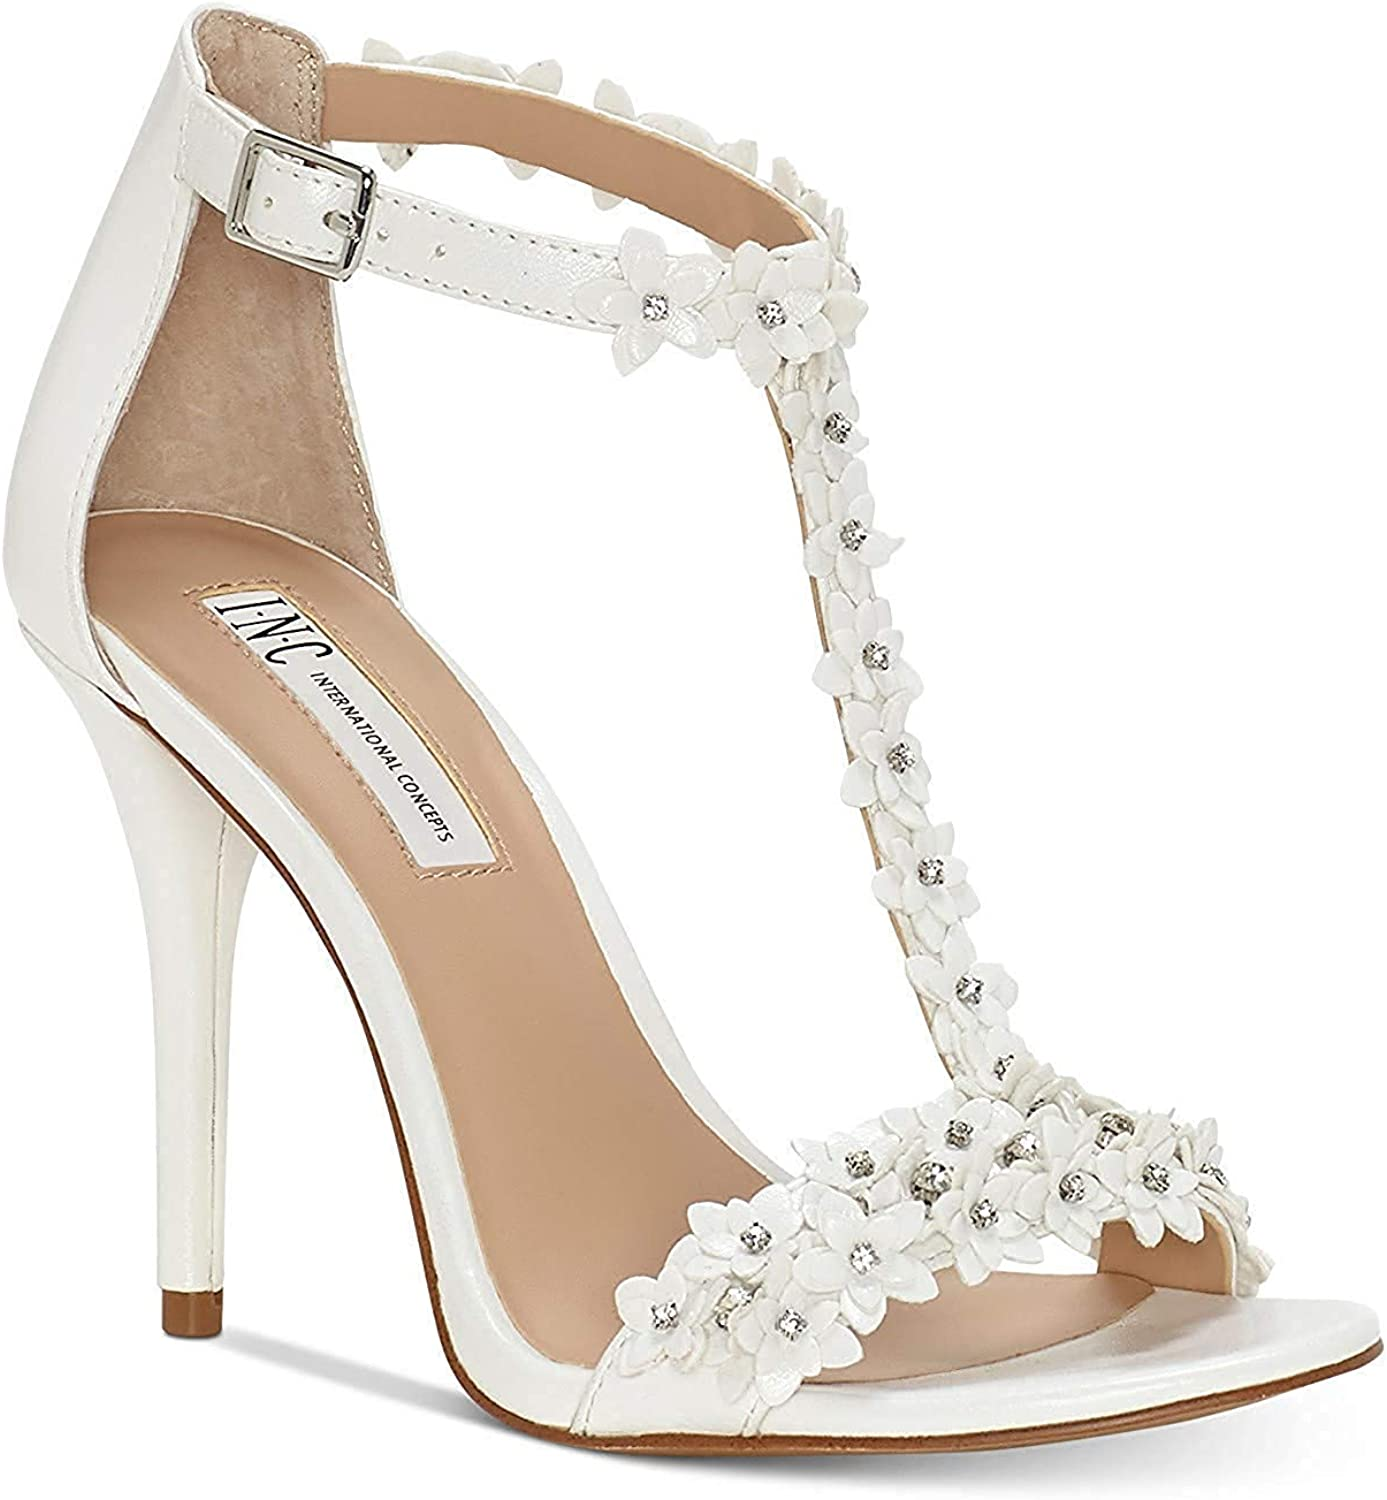 INC International Concepts Womens Rosiee Open Toe Casual Ankle Strap Sandals